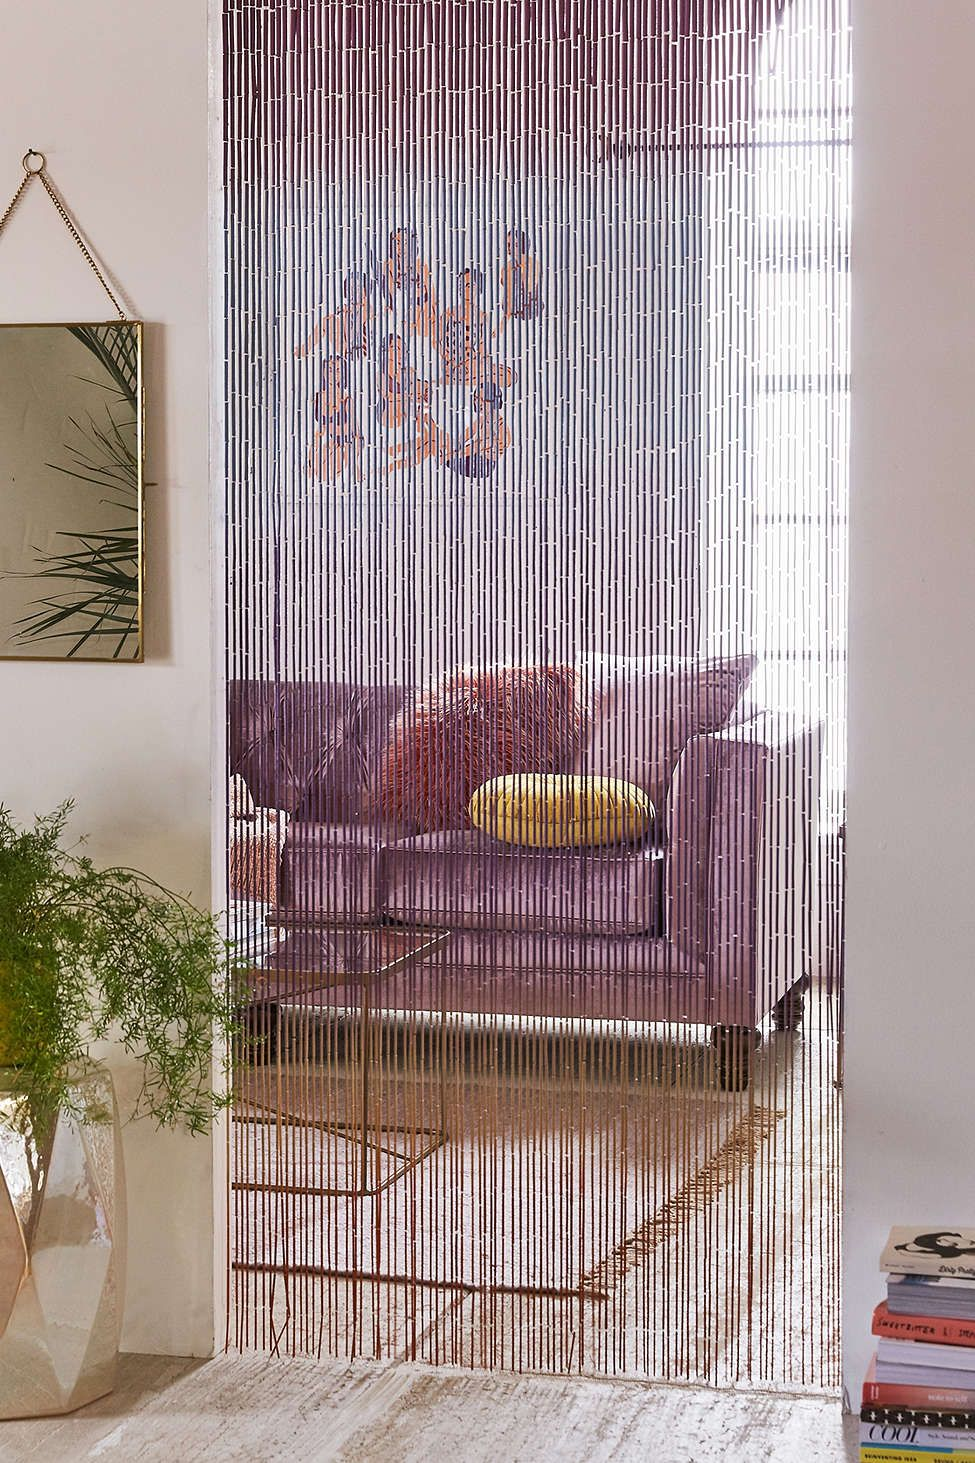 Bamboo house window design  ombre bamboo beaded curtain  house  living room  pinterest